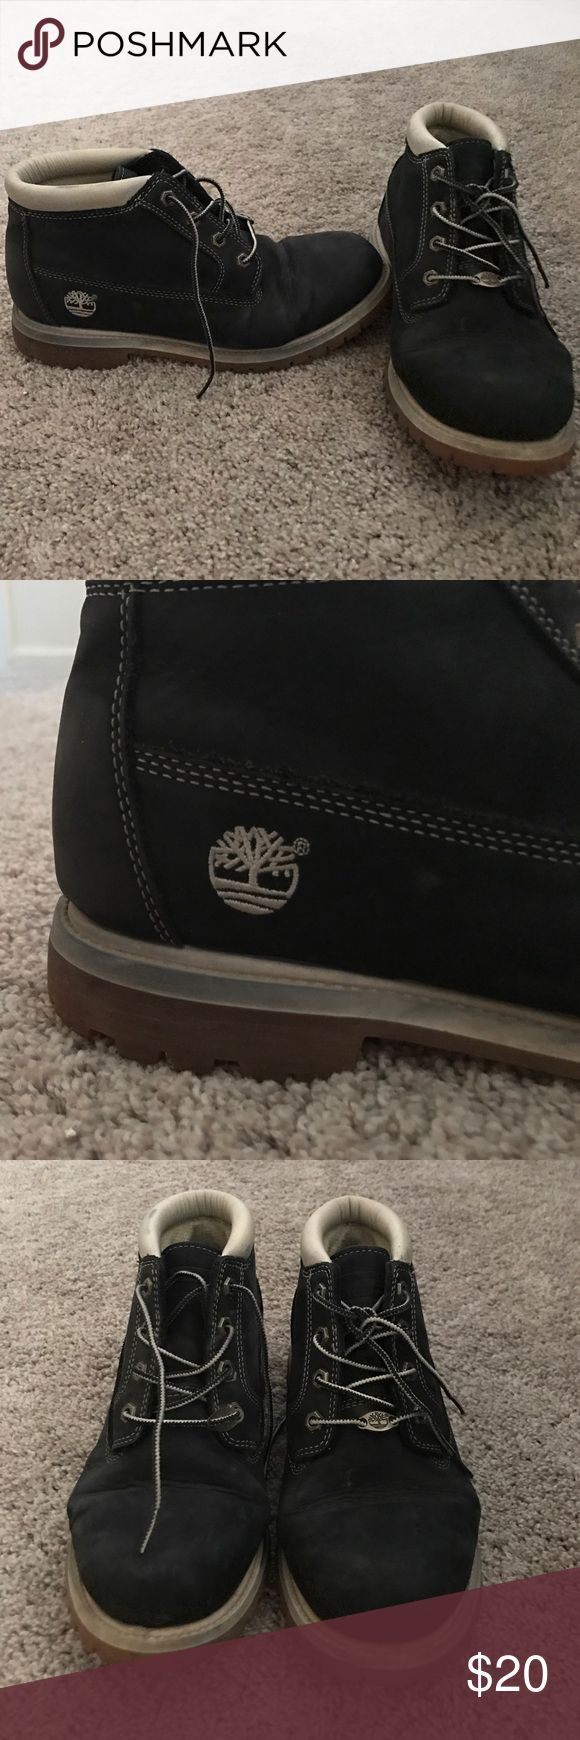 Vintage Tims boots Worn ok condition. If cleaned up would look fantastic. Original laces. Worn a few times in inclement weather but otherwise been sitting around. Timberland Shoes Combat & Moto Boots